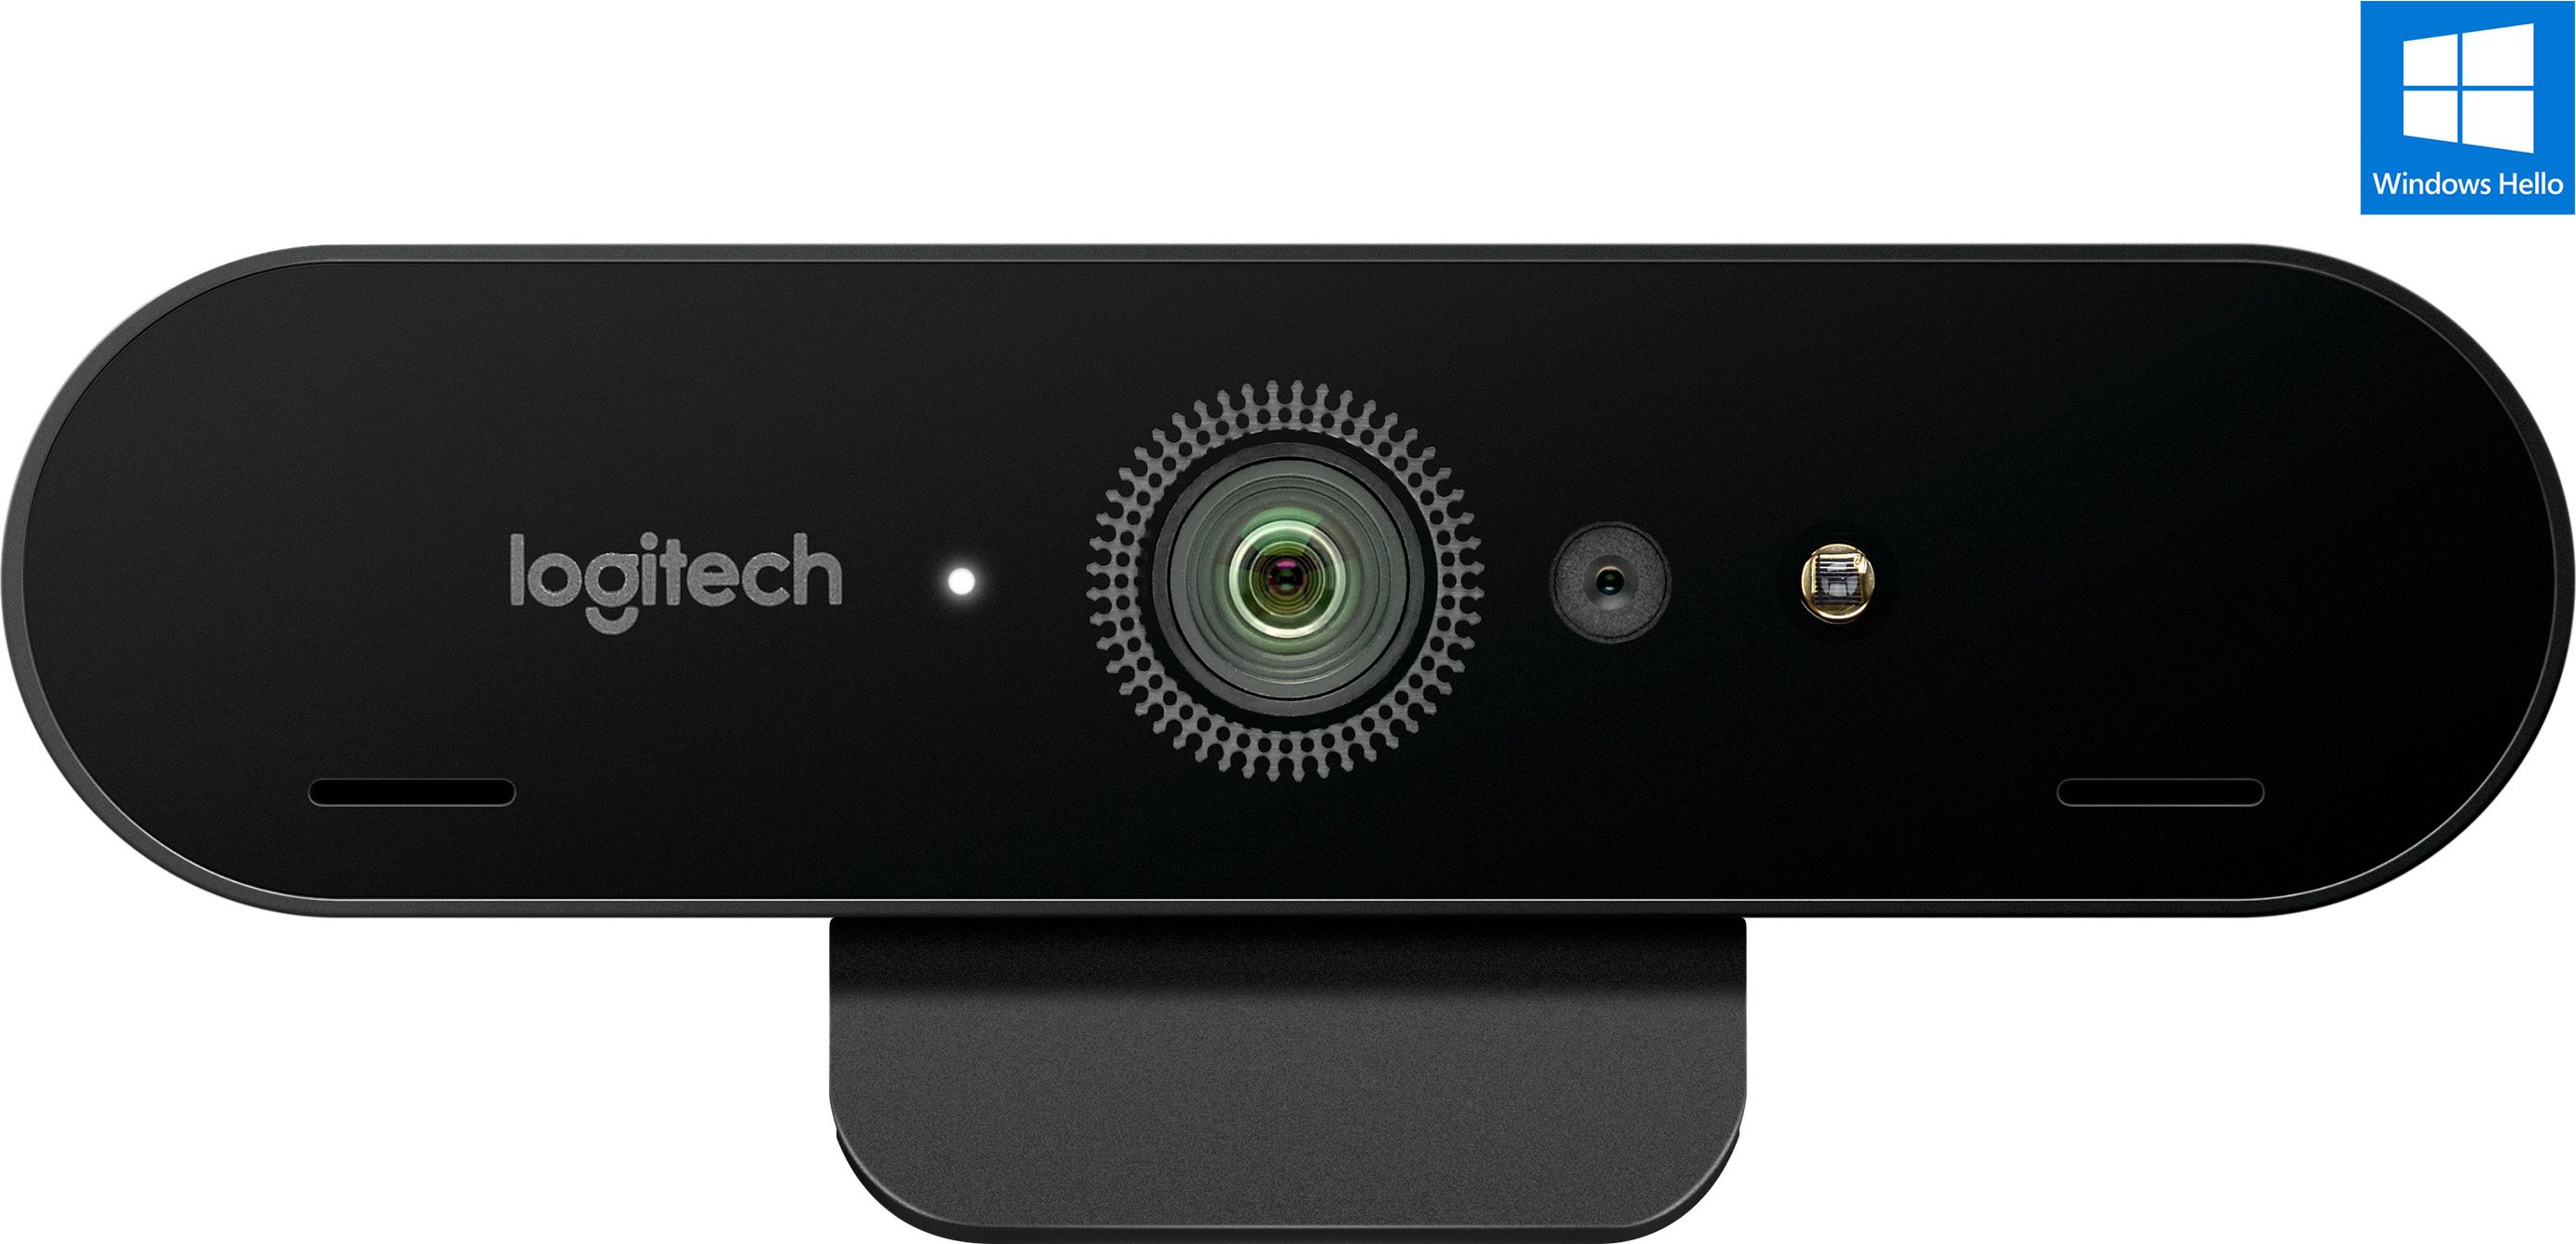 Logitech BRIO 4K Ultra HD Webcam - Certified for Windows Hello Deal